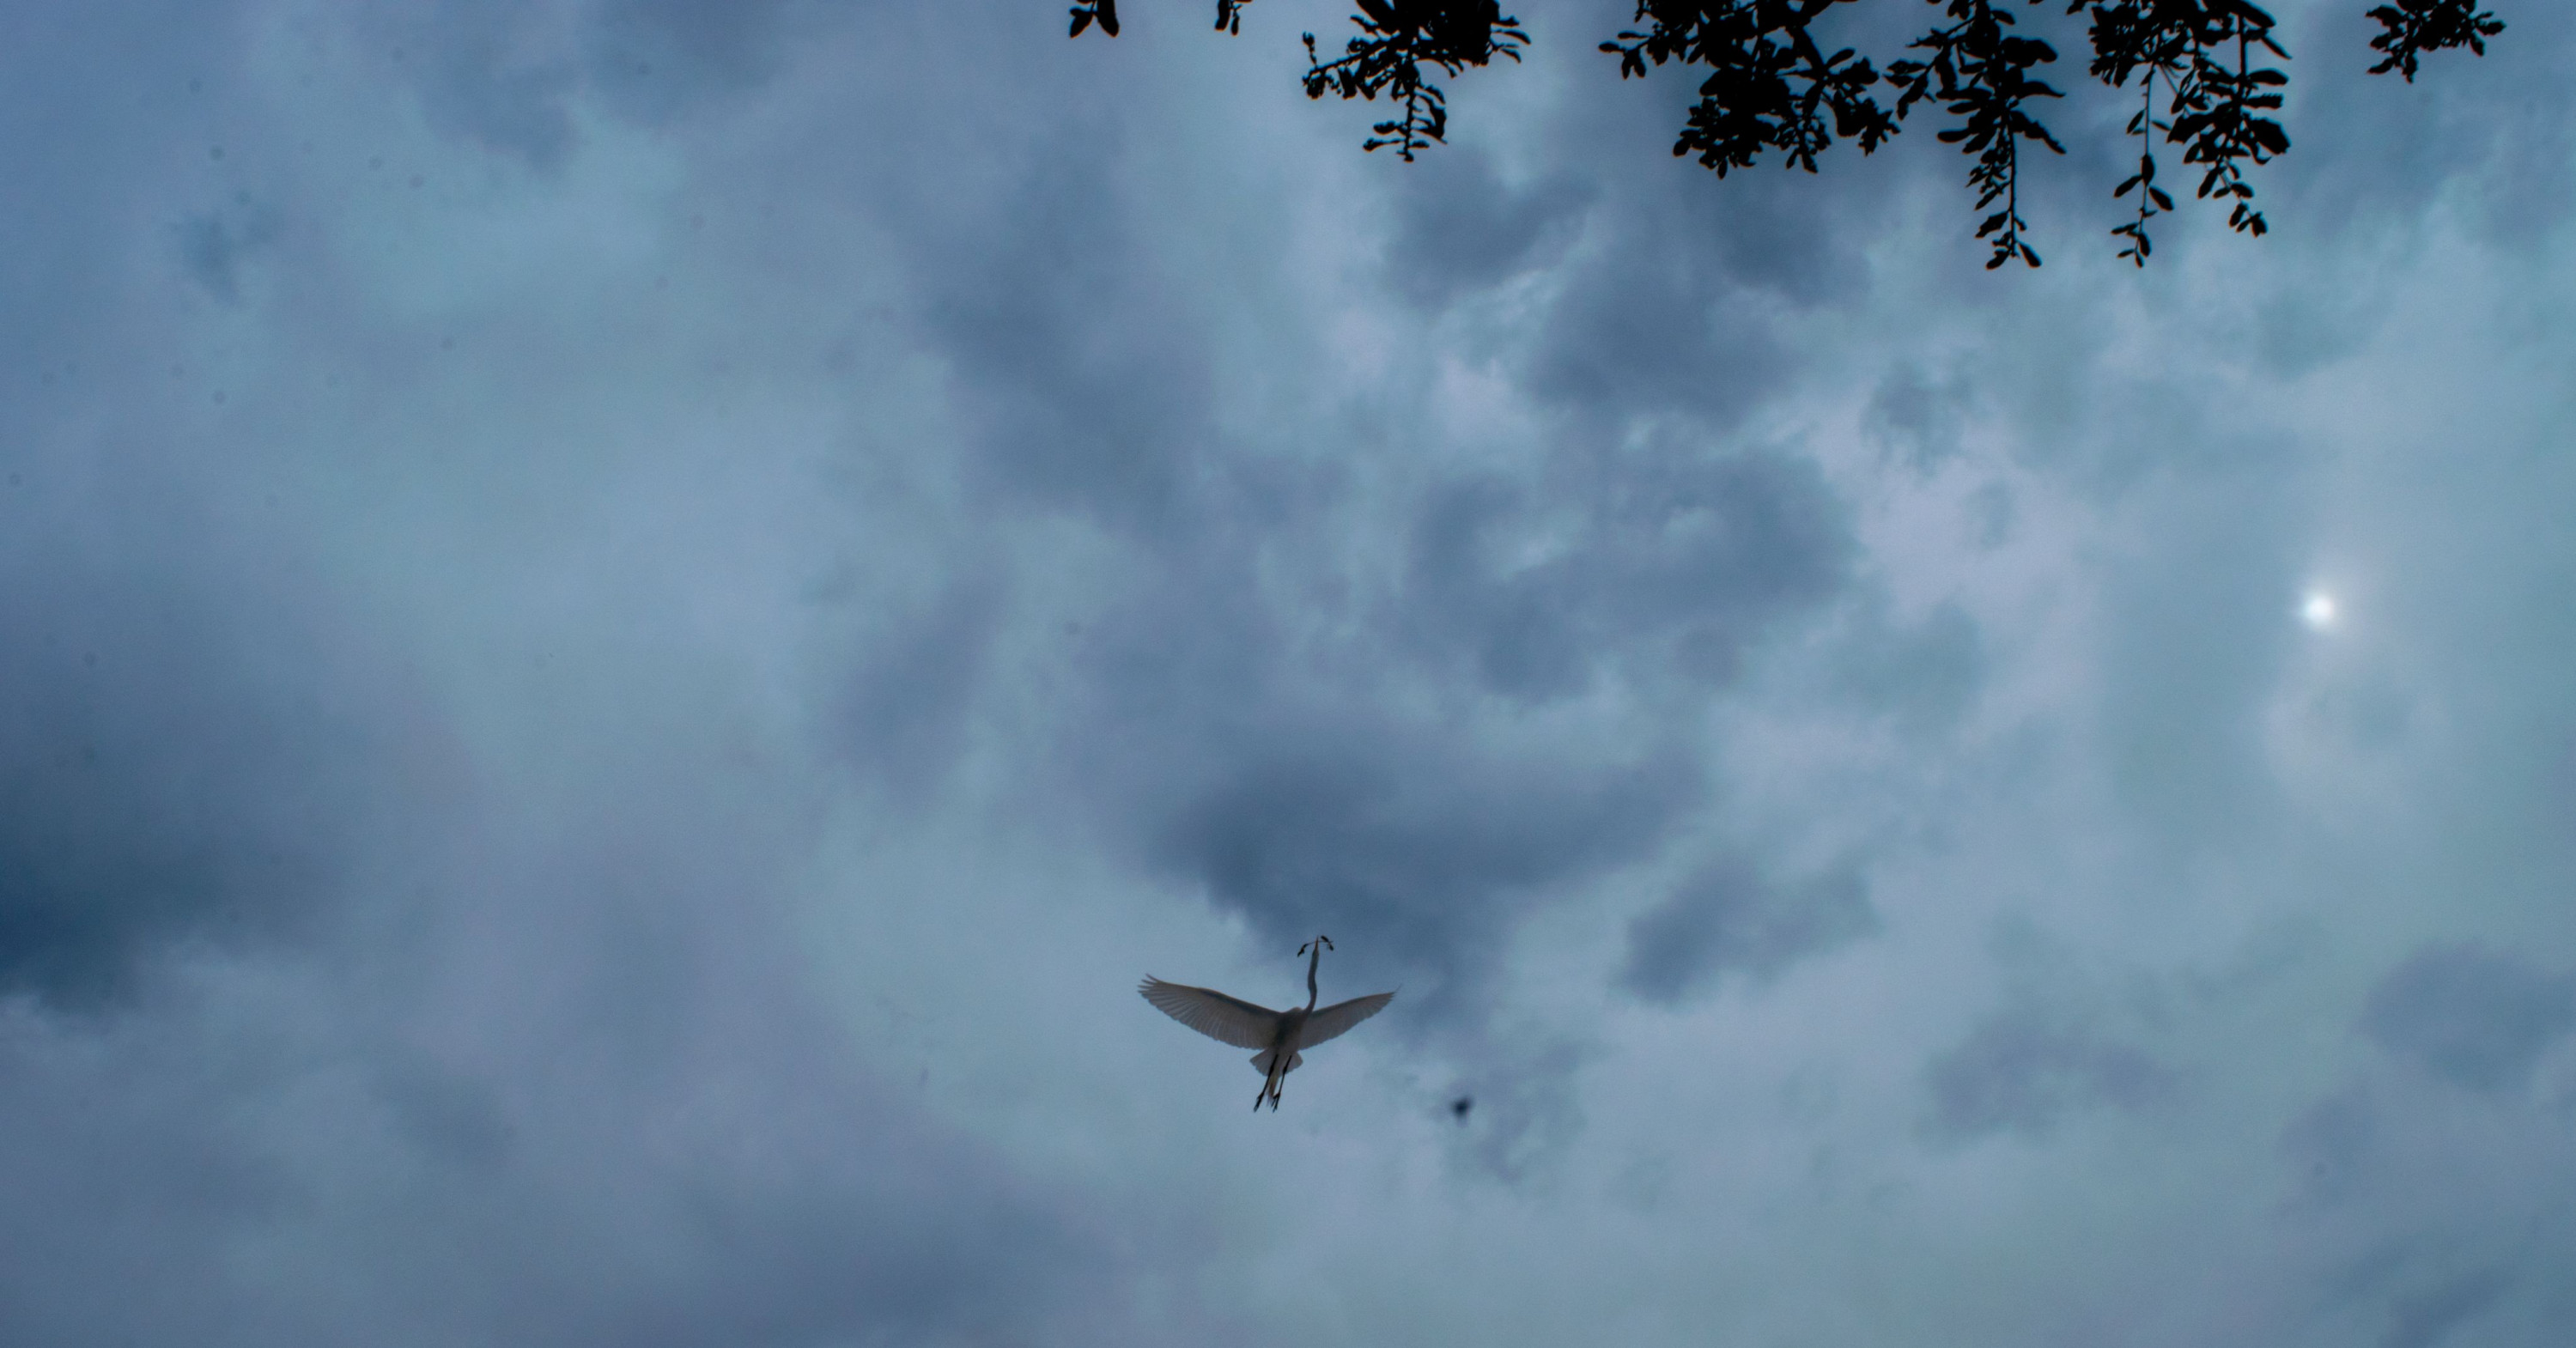 An egret soars through cloud strewn skies carrying a branch.